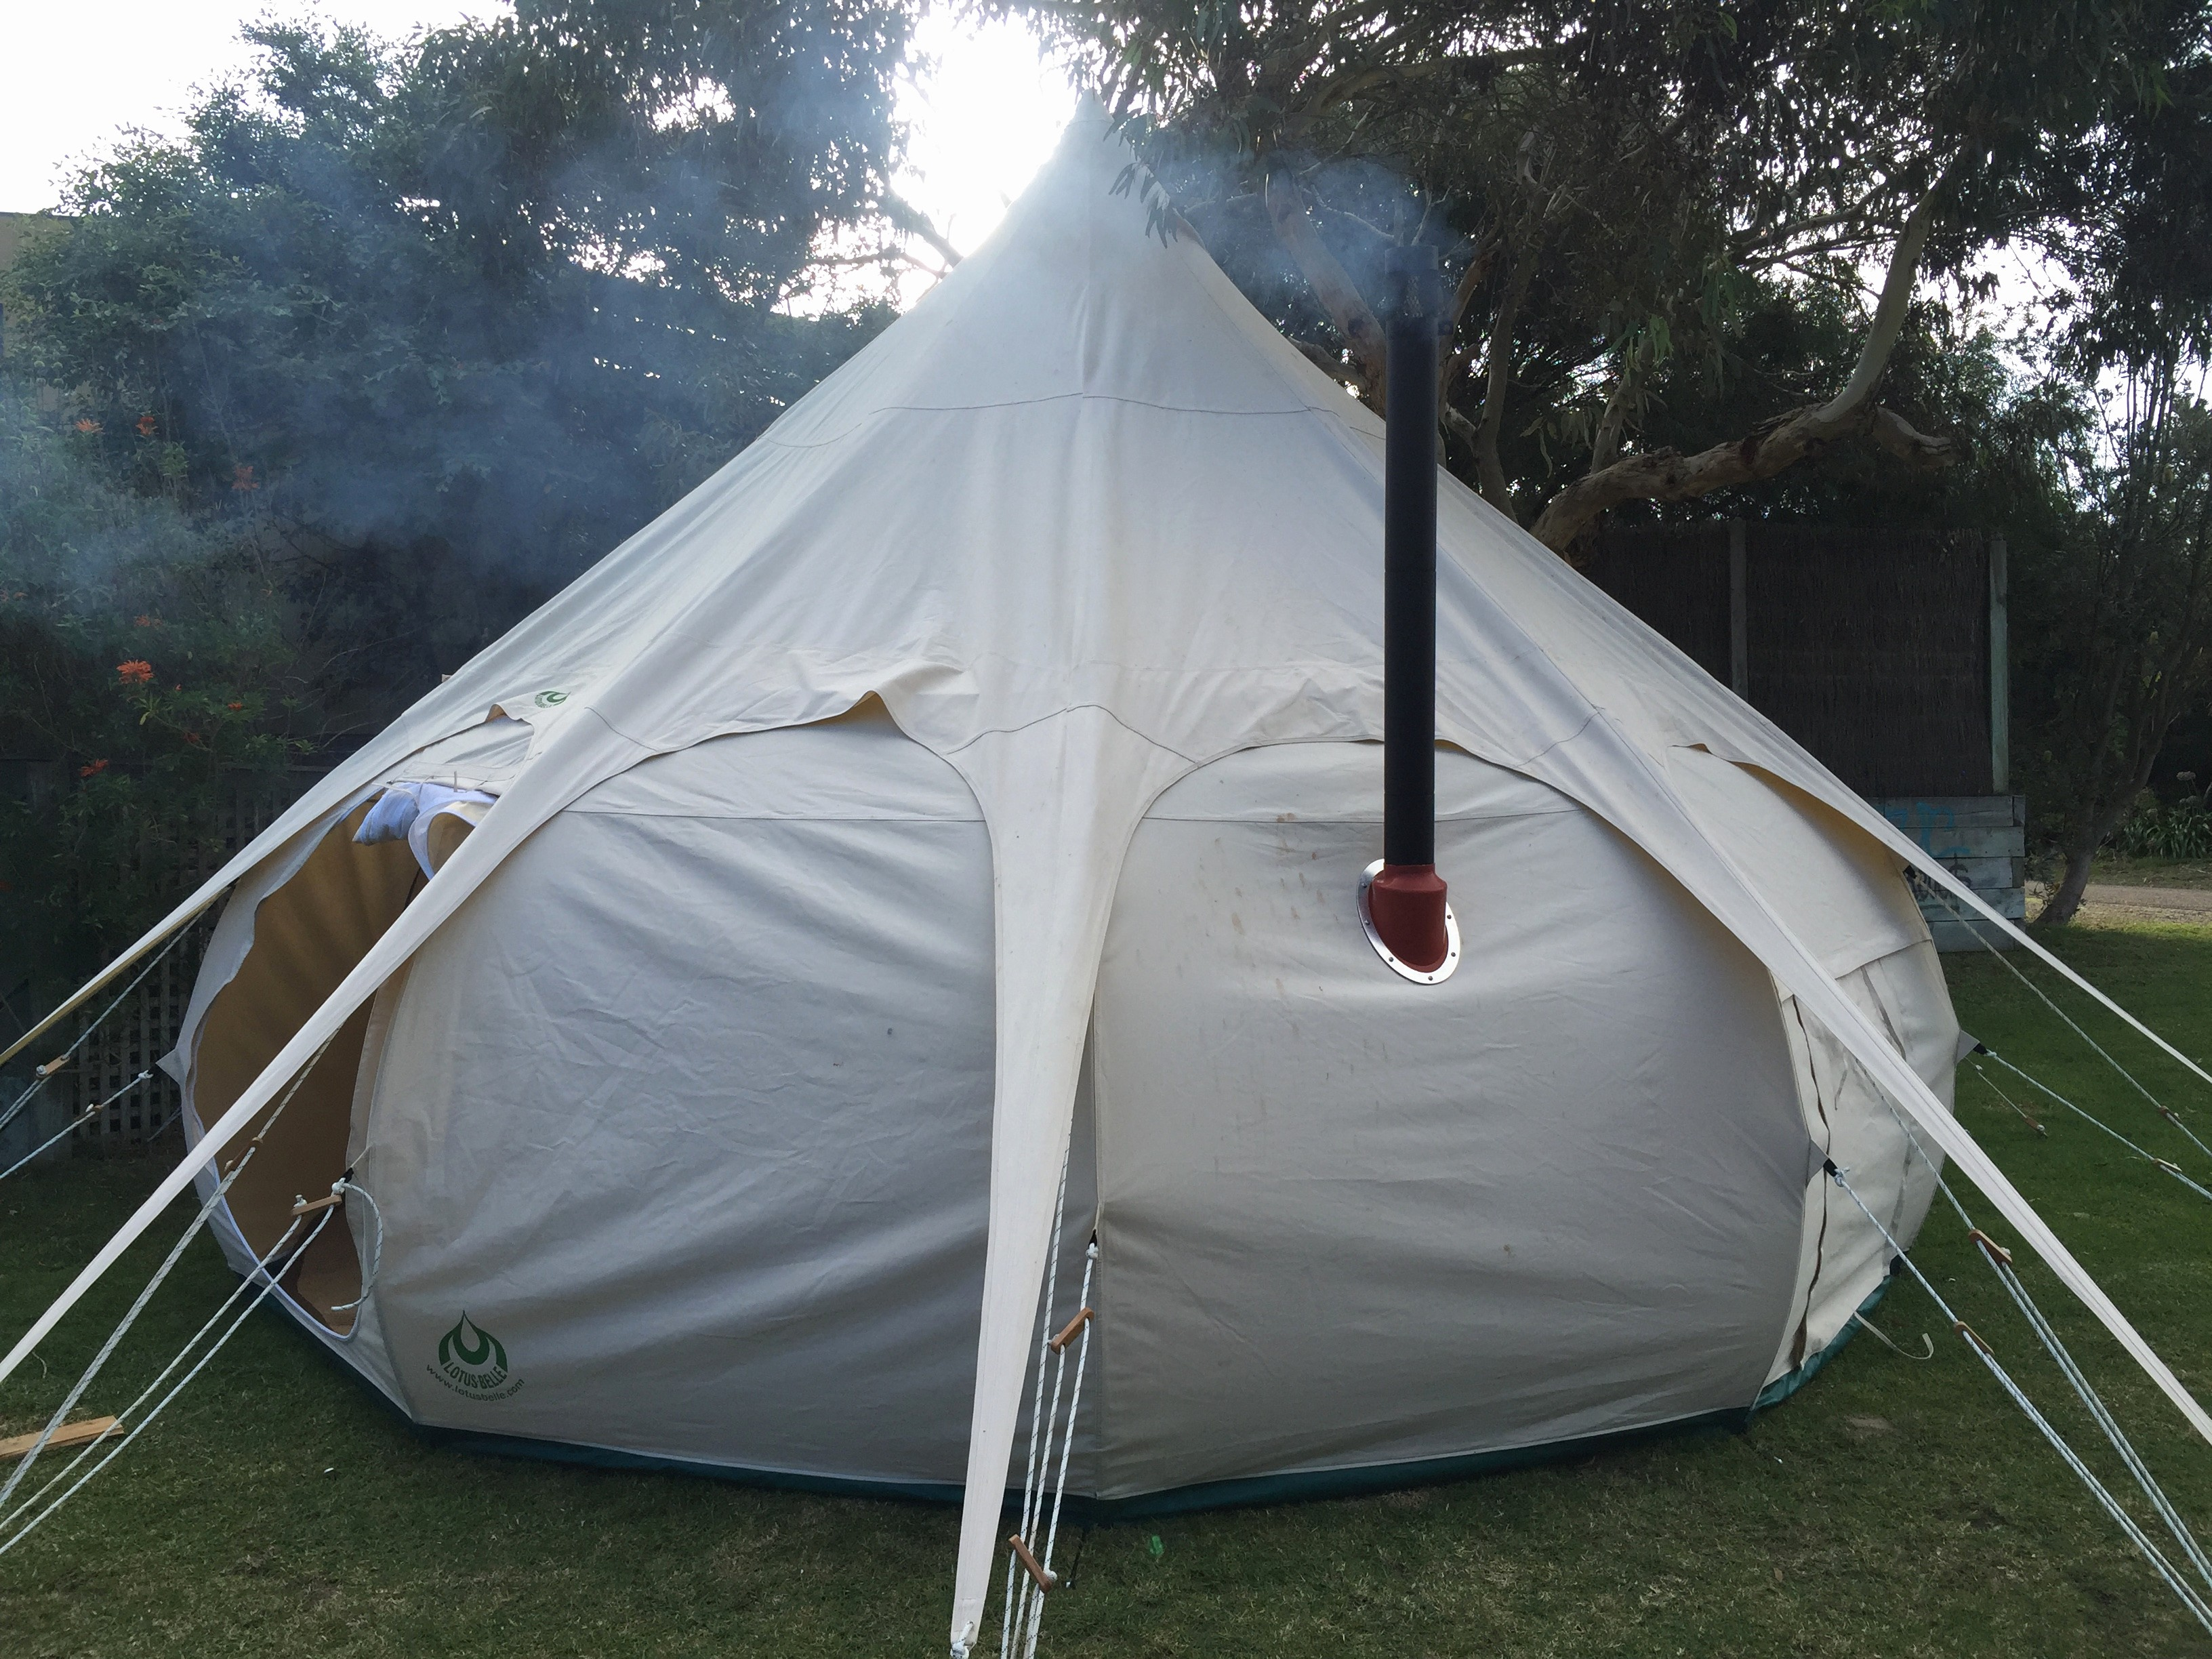 How to Make Name Tents Inspirational Wood Stove Tent & Image for R Version Name